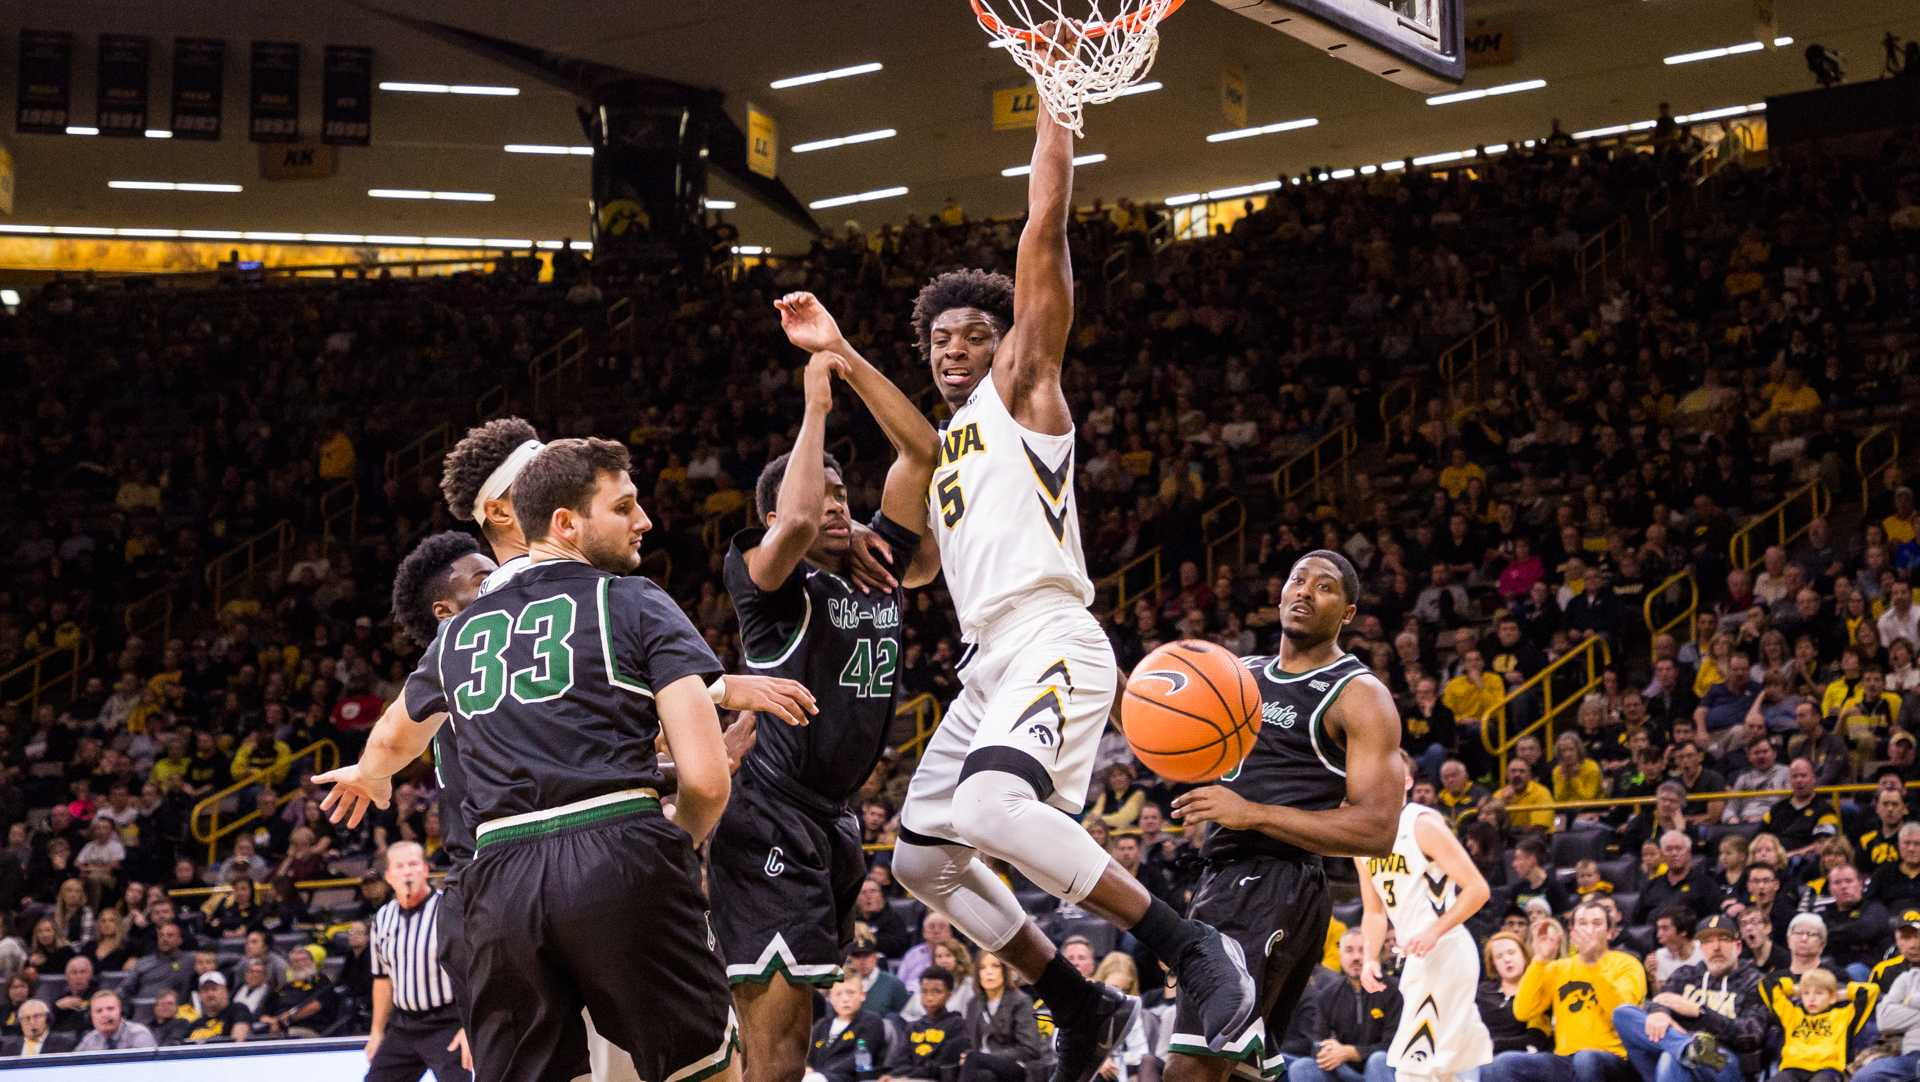 Iowa's Tyler Cook hangs on the rim after dunking in a game against Chicago State University on Friday, 10. Nov, 2017. The Hawkeyes defeated the Cougars, 95-62. (David Harmantas/The Daily Iowan)